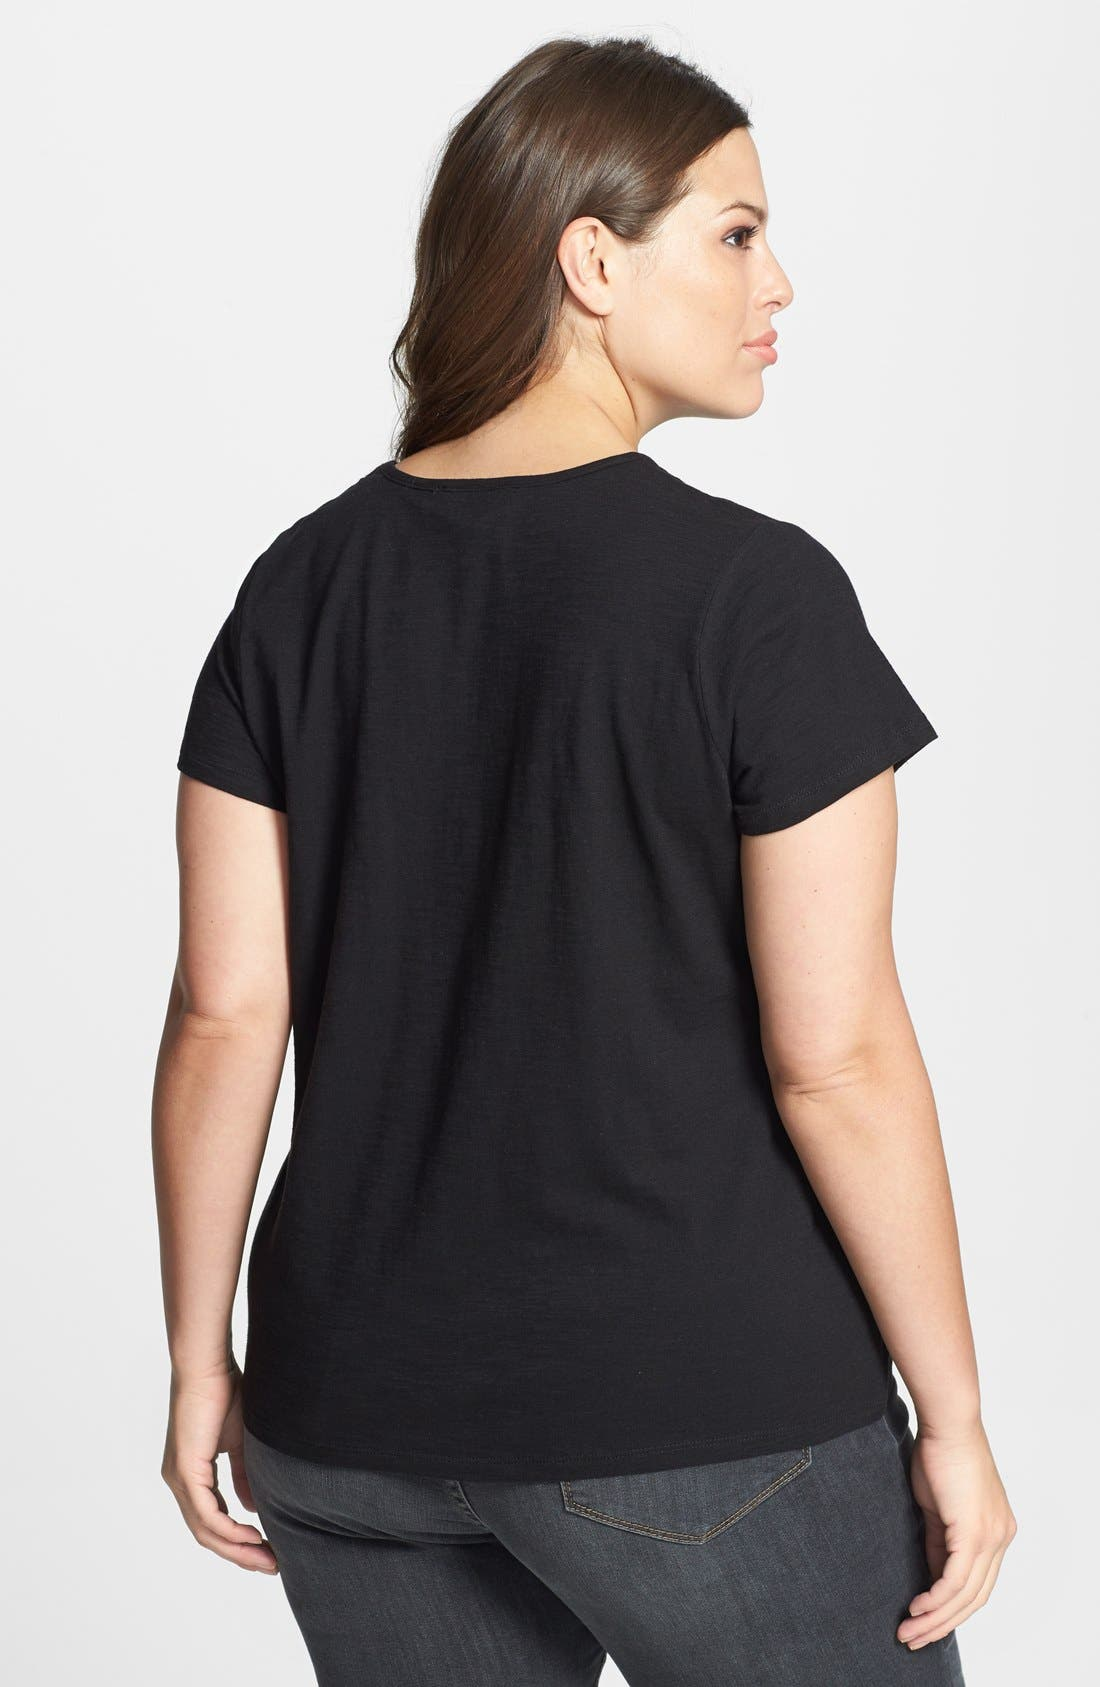 Alternate Image 2  - Two by Vince Camuto 'Born to be Loved' Slub Jersey Tee (Plus Size)